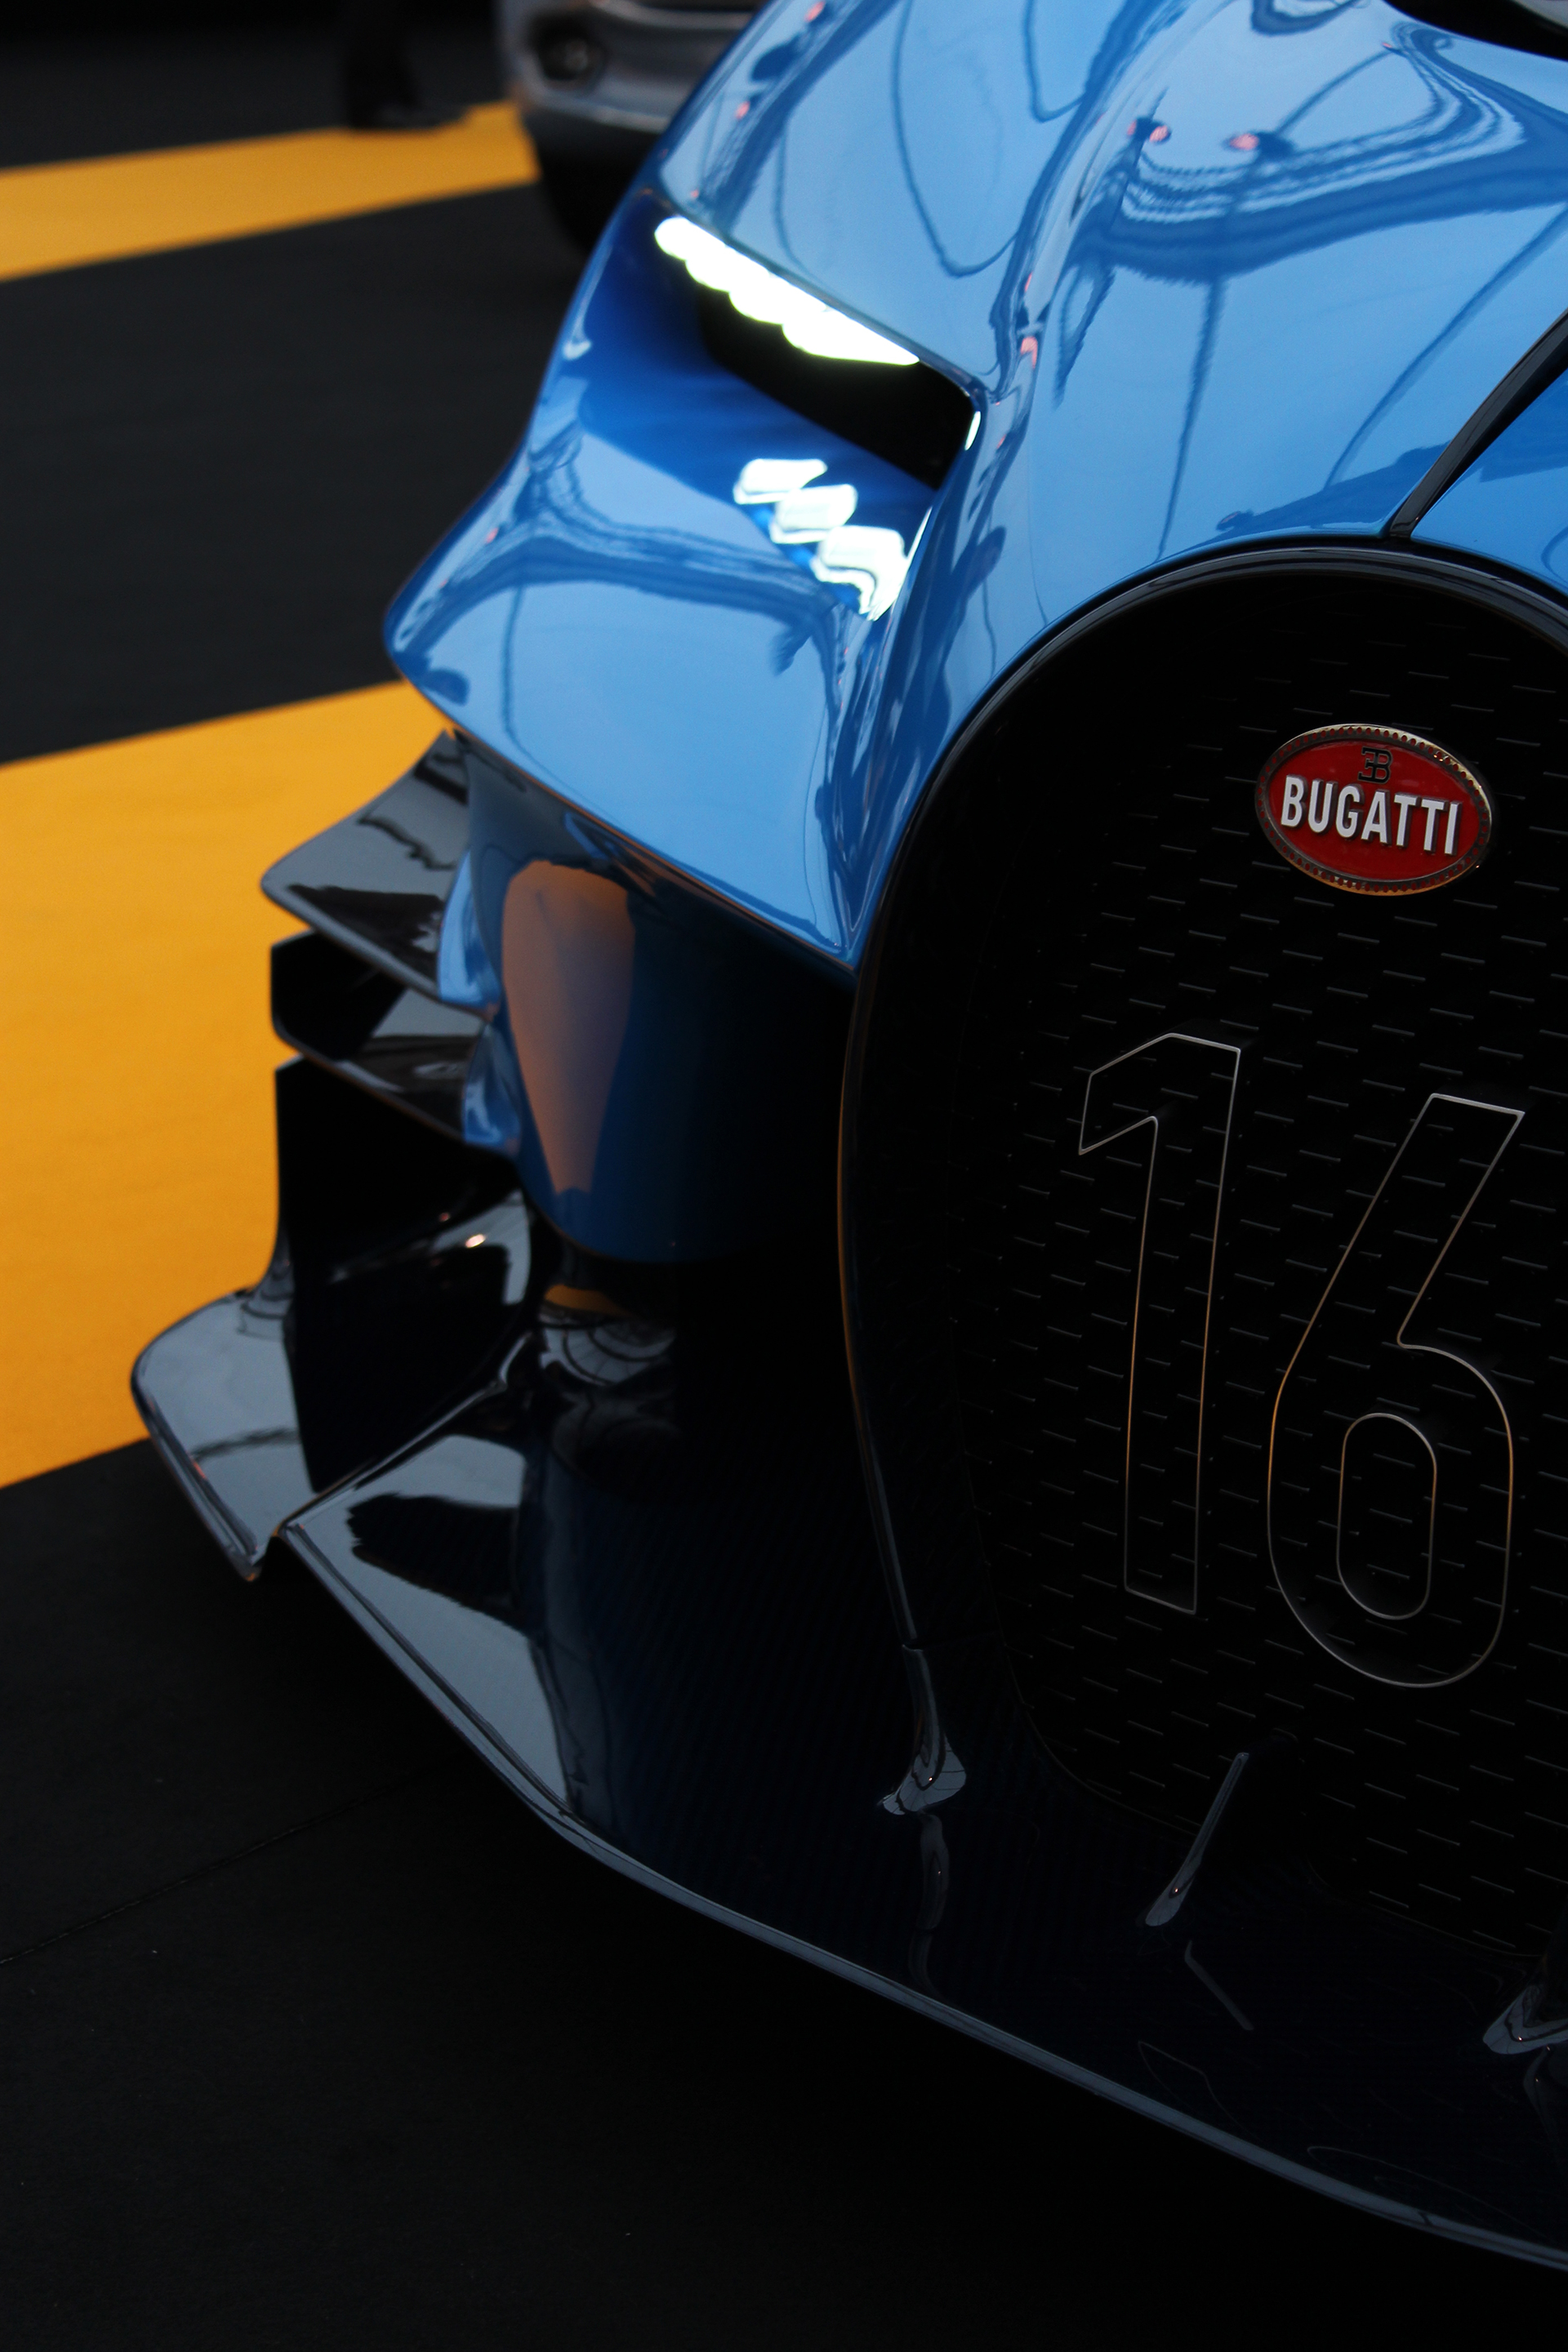 Bugatti Vision GT - avant / front - Exposition Concept cars 2016 - Arnaud Demasier RS Photographie